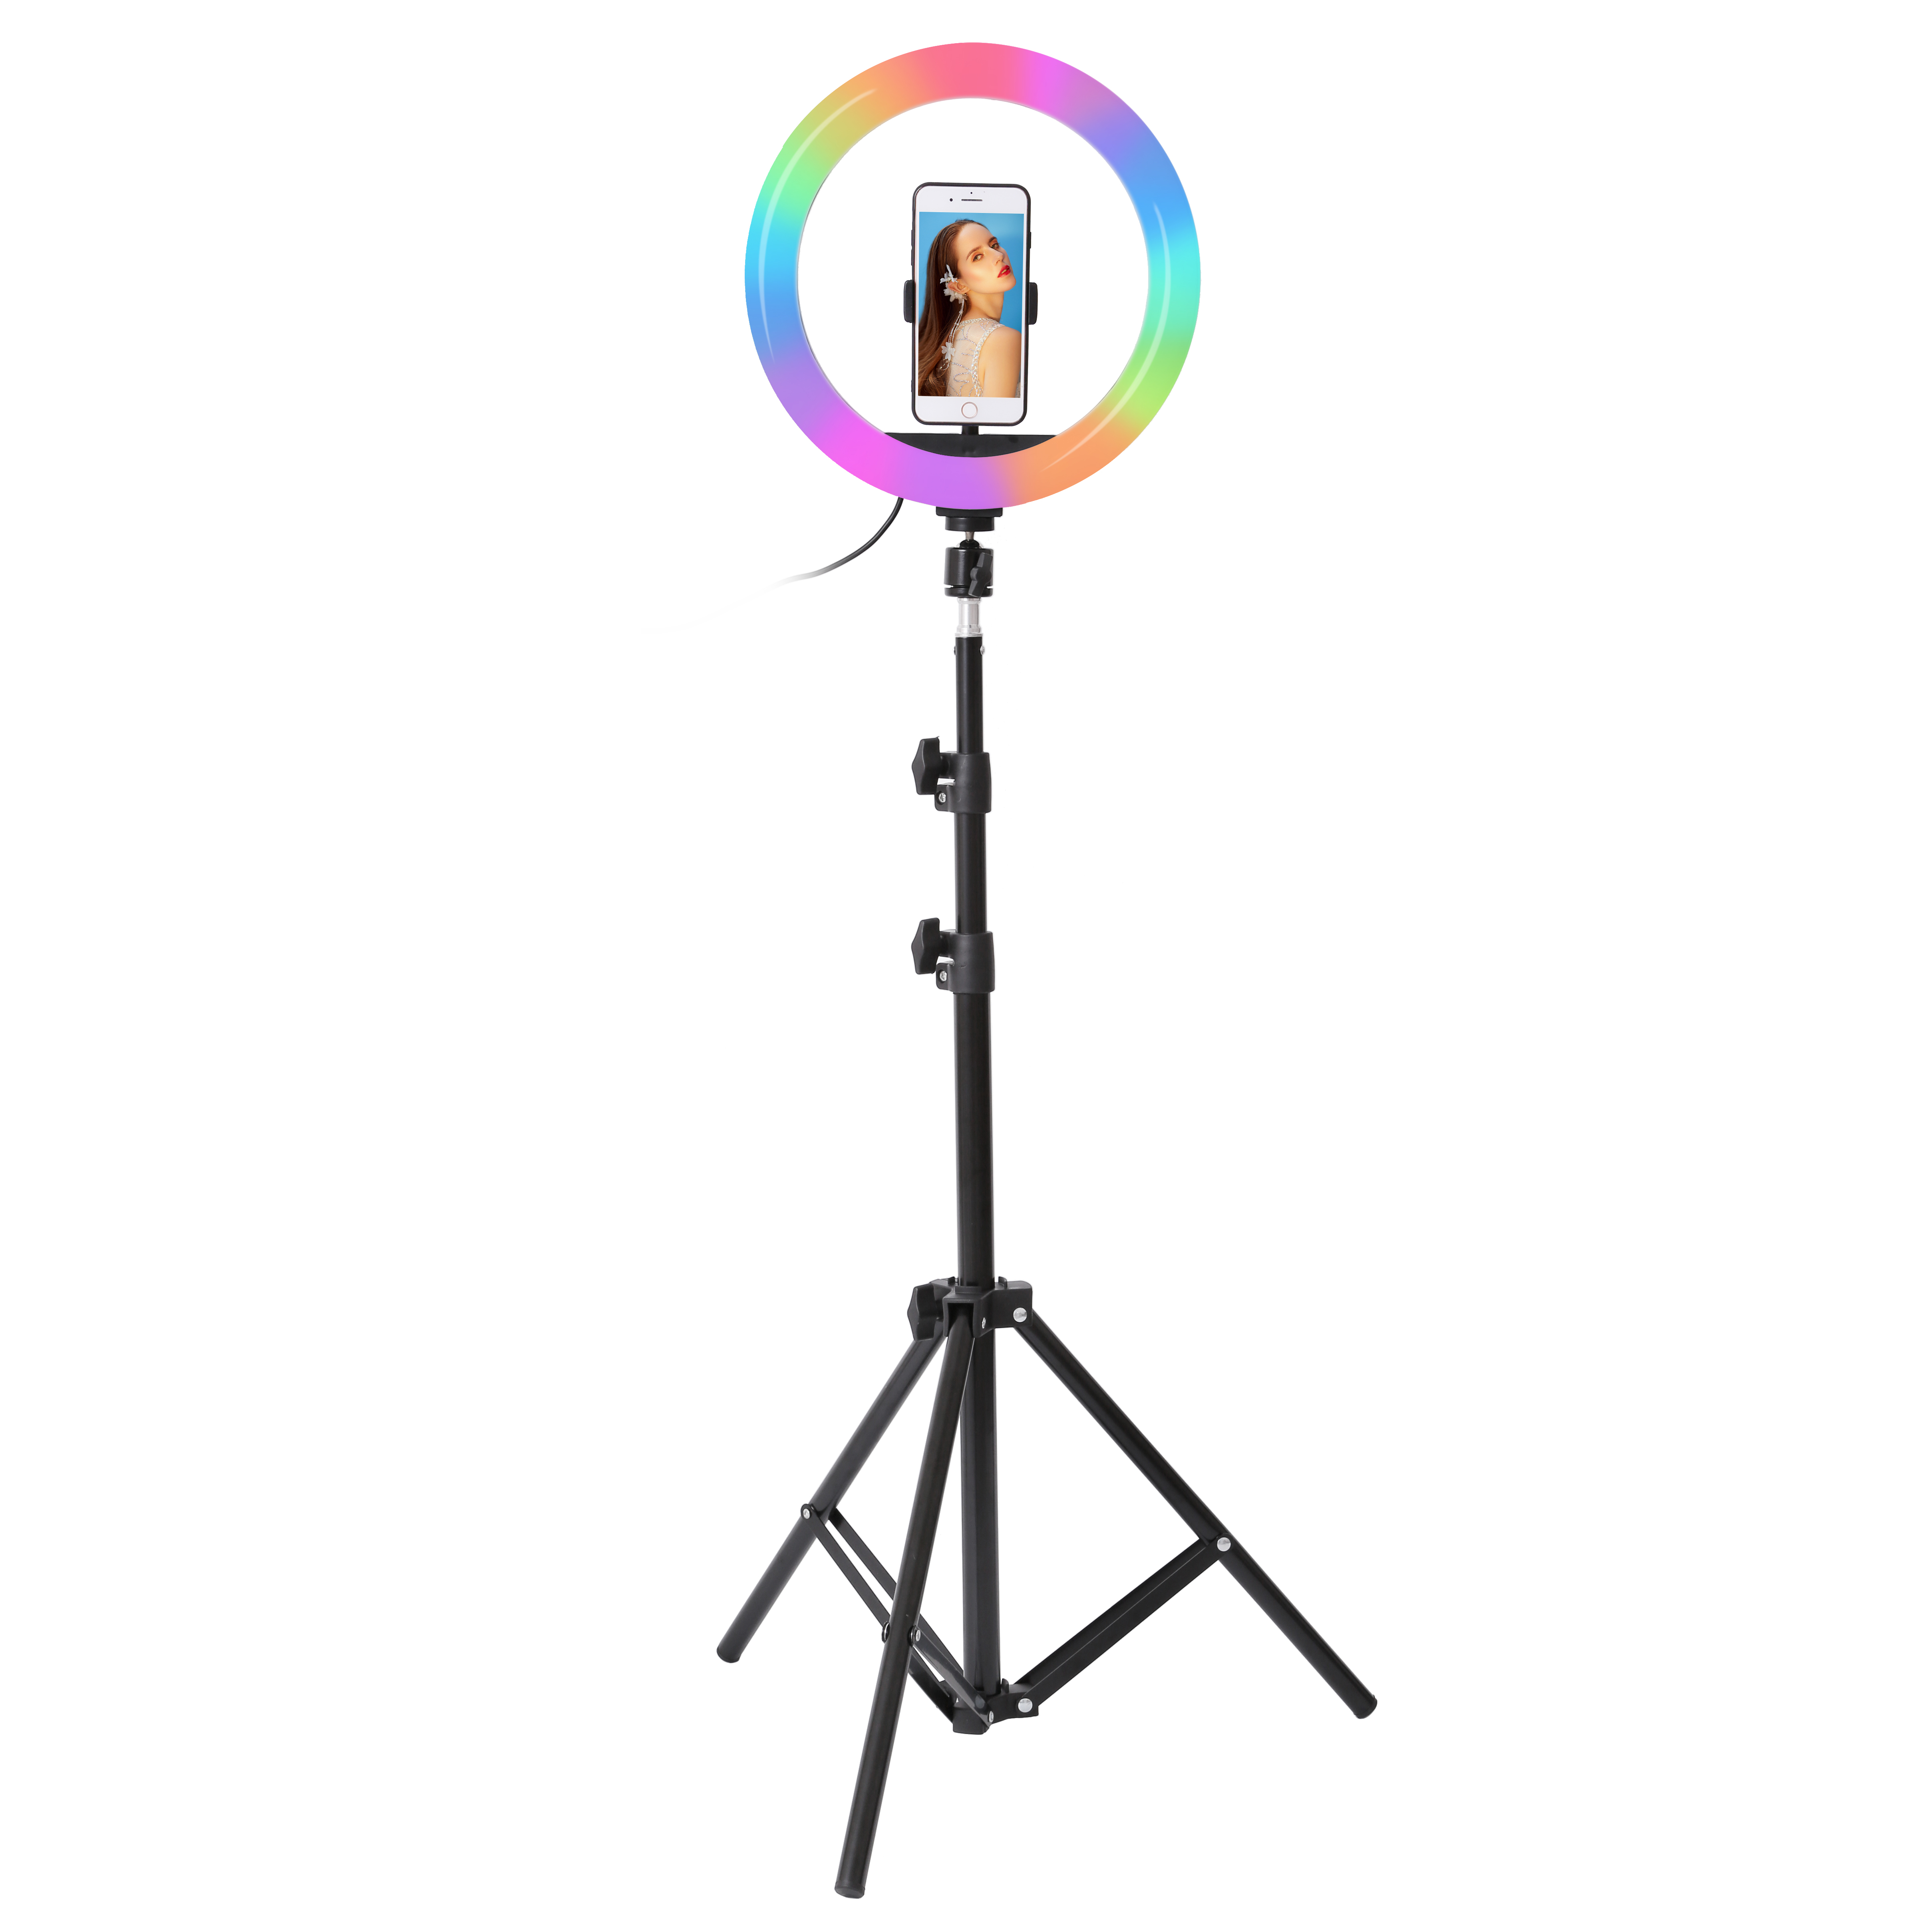 26cm 33cm RGB Selfie Ring LED Light with Stand Tripod Photography Studio Ring Lamps for Phone 26cm 33cm RGB Selfie Ring LED Light with Stand Tripod Photography Studio Ring Lamps for Phone TikTok Youtube Makeup Video Vlog